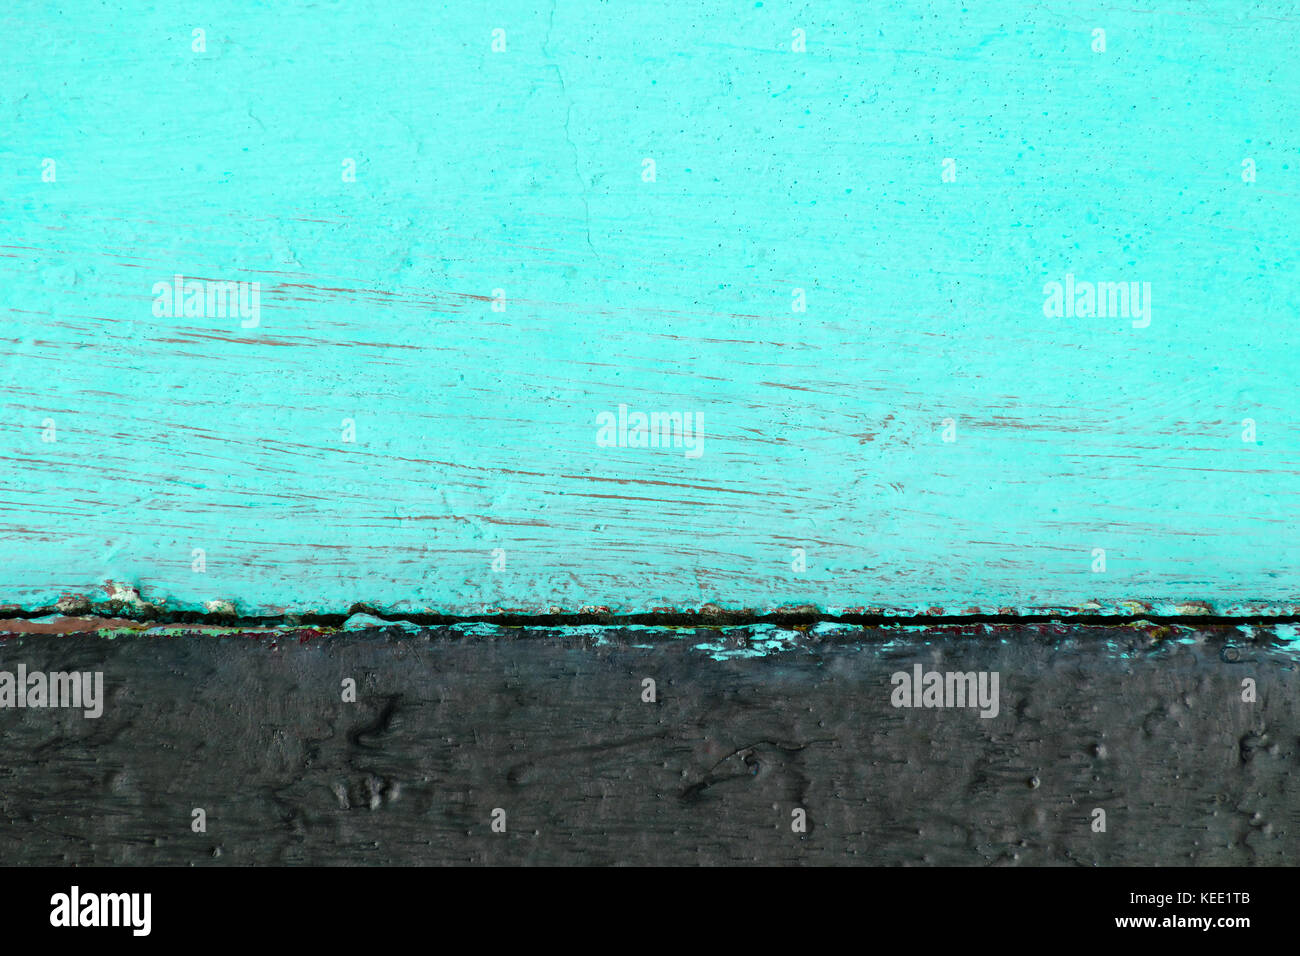 Two-tone wooden background consisting of turquoise color with black. - Stock Image